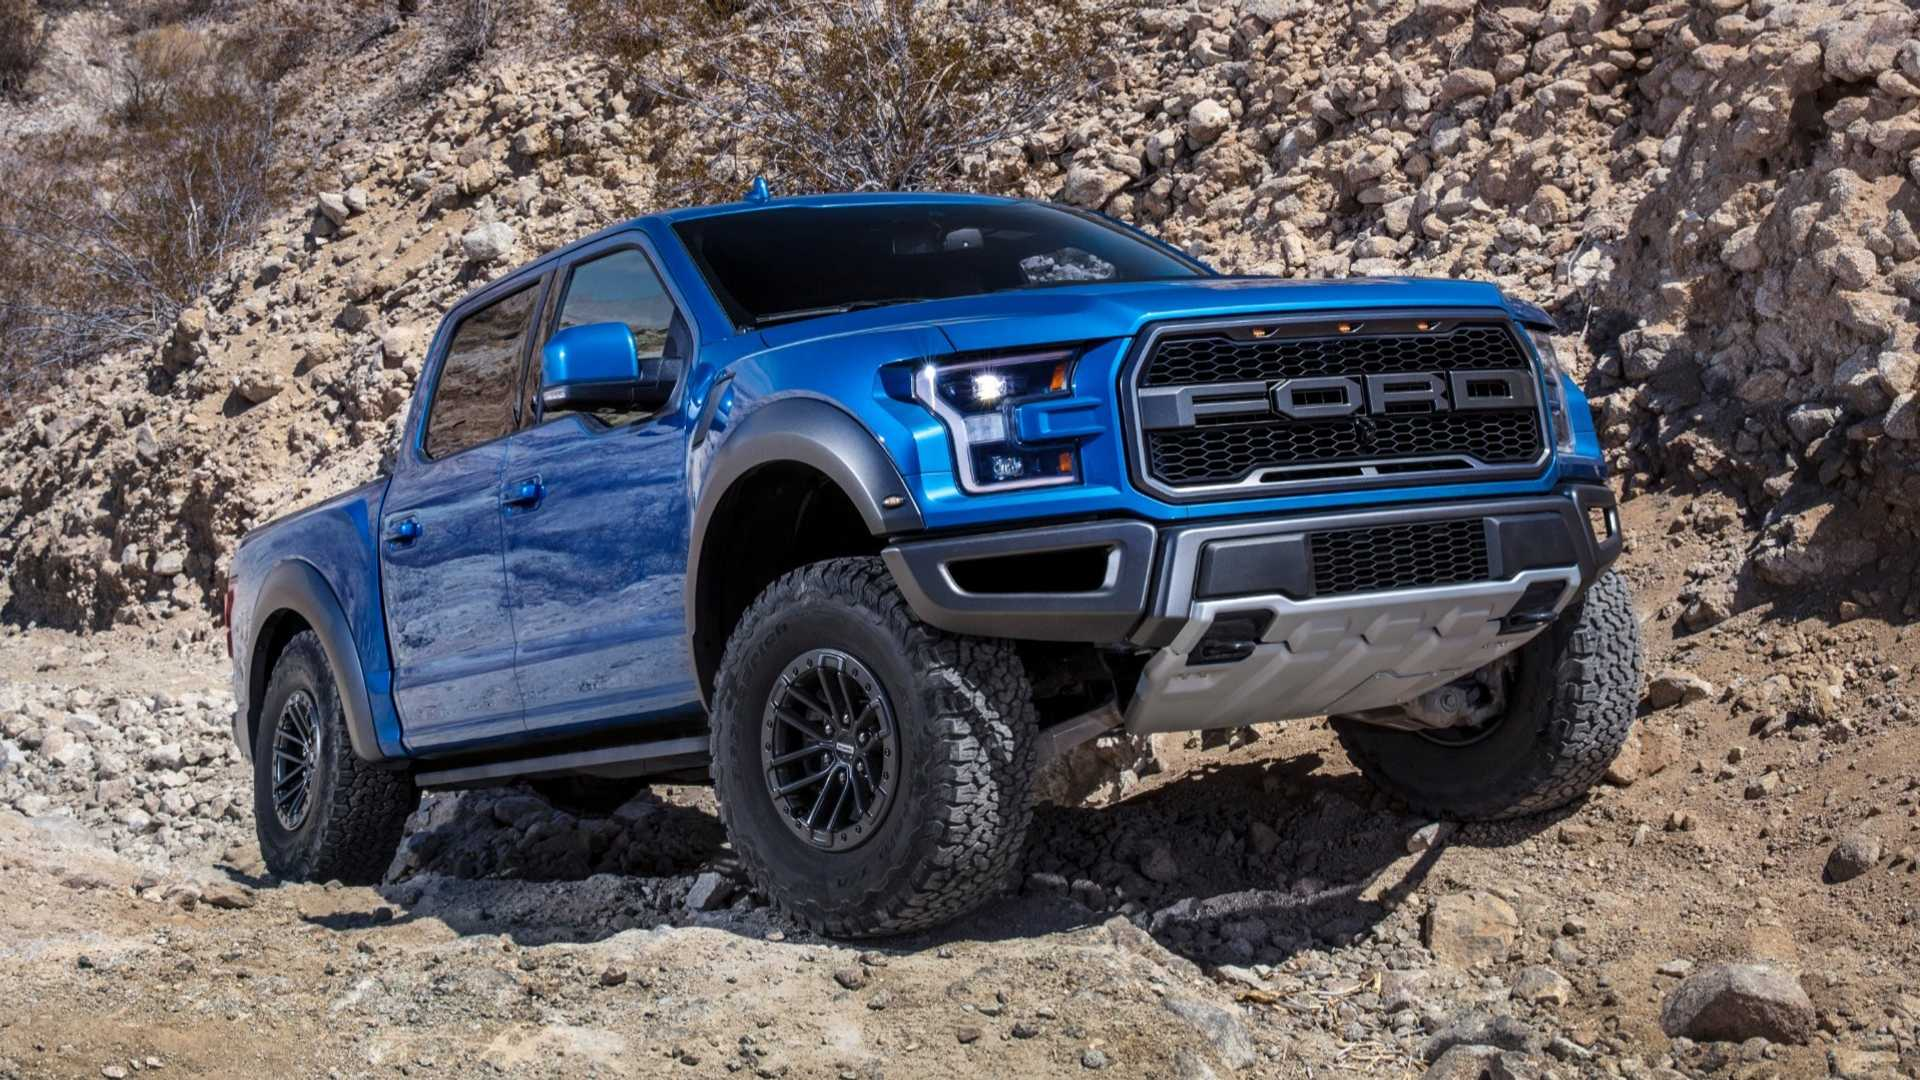 76 New 2019 Ford F150 Svt Raptor Research New